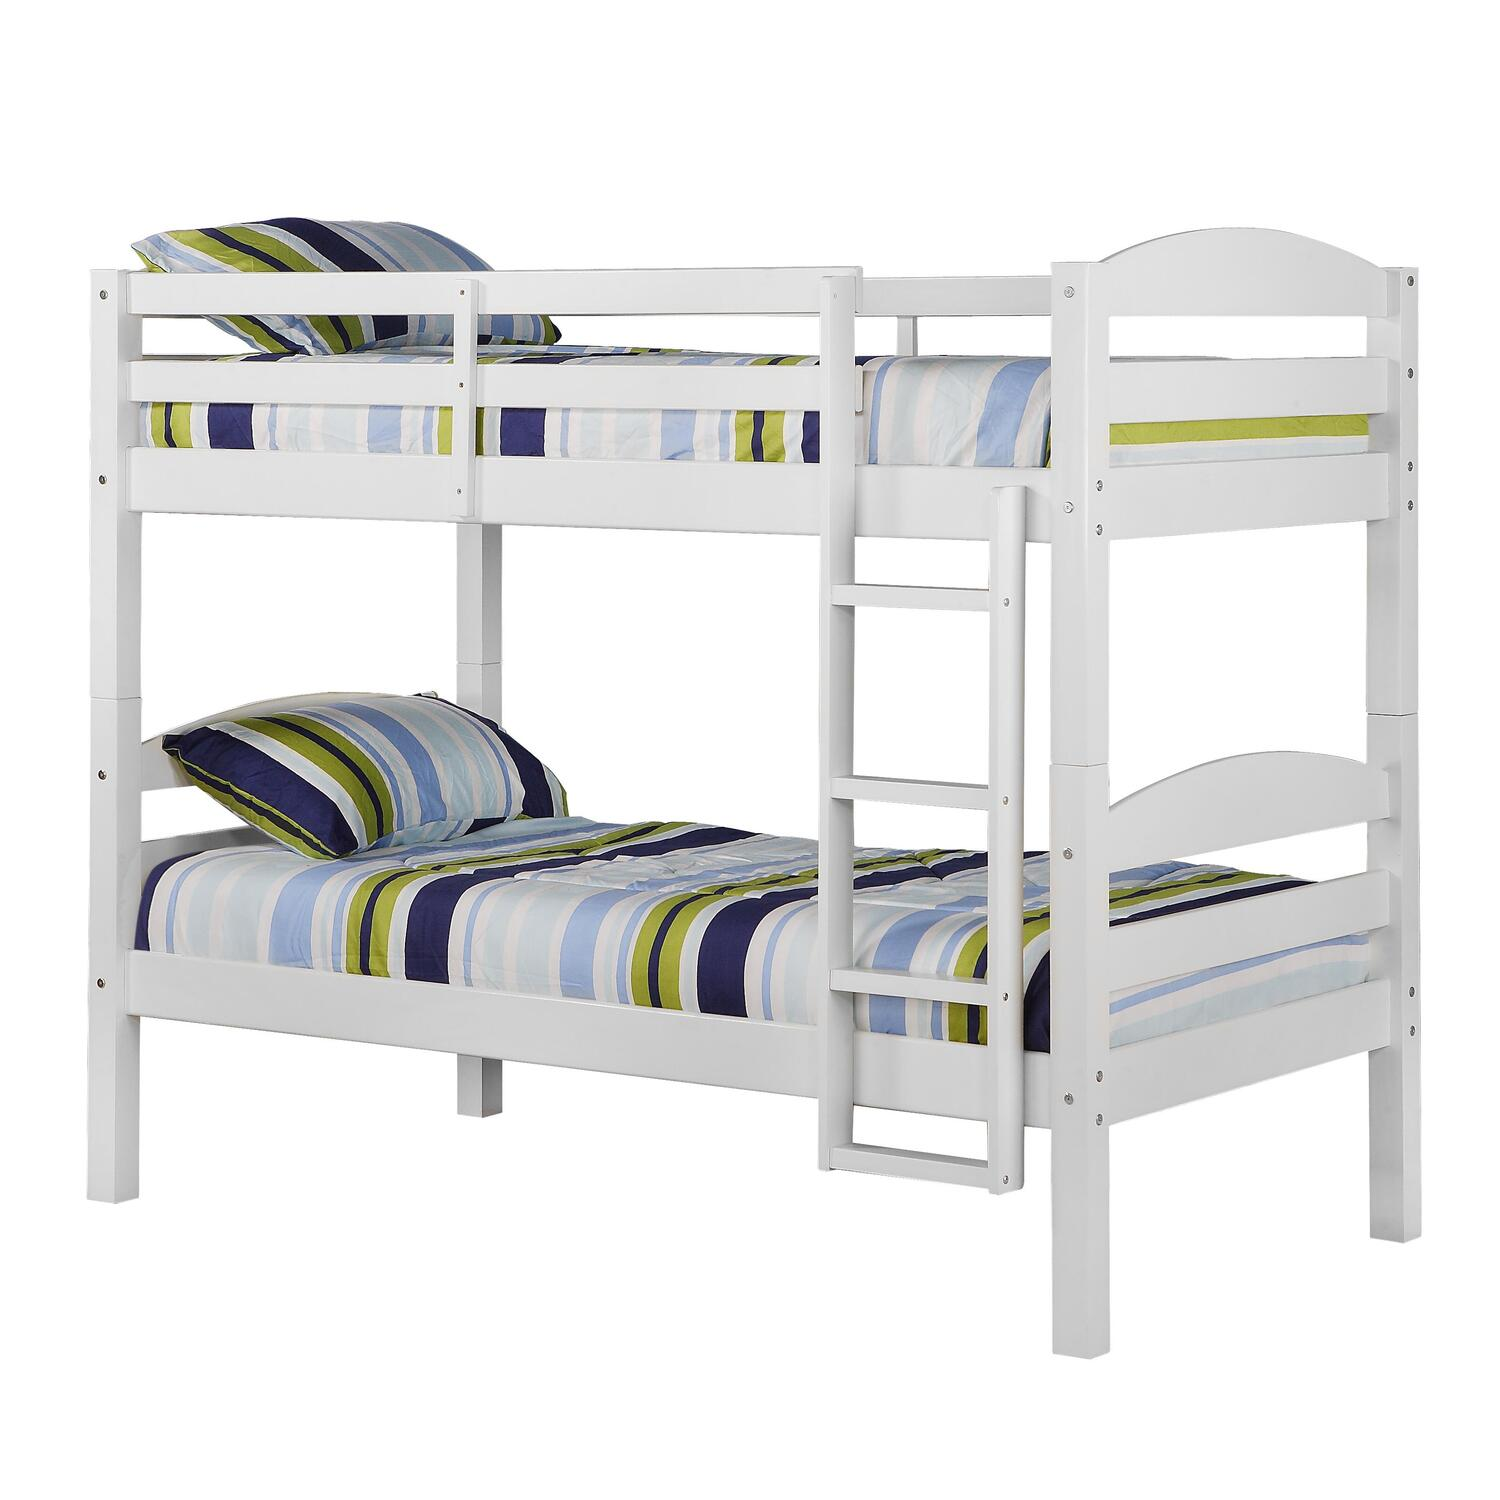 Pics s White Wood Twin Solid Wooden Bunk Bed Beds